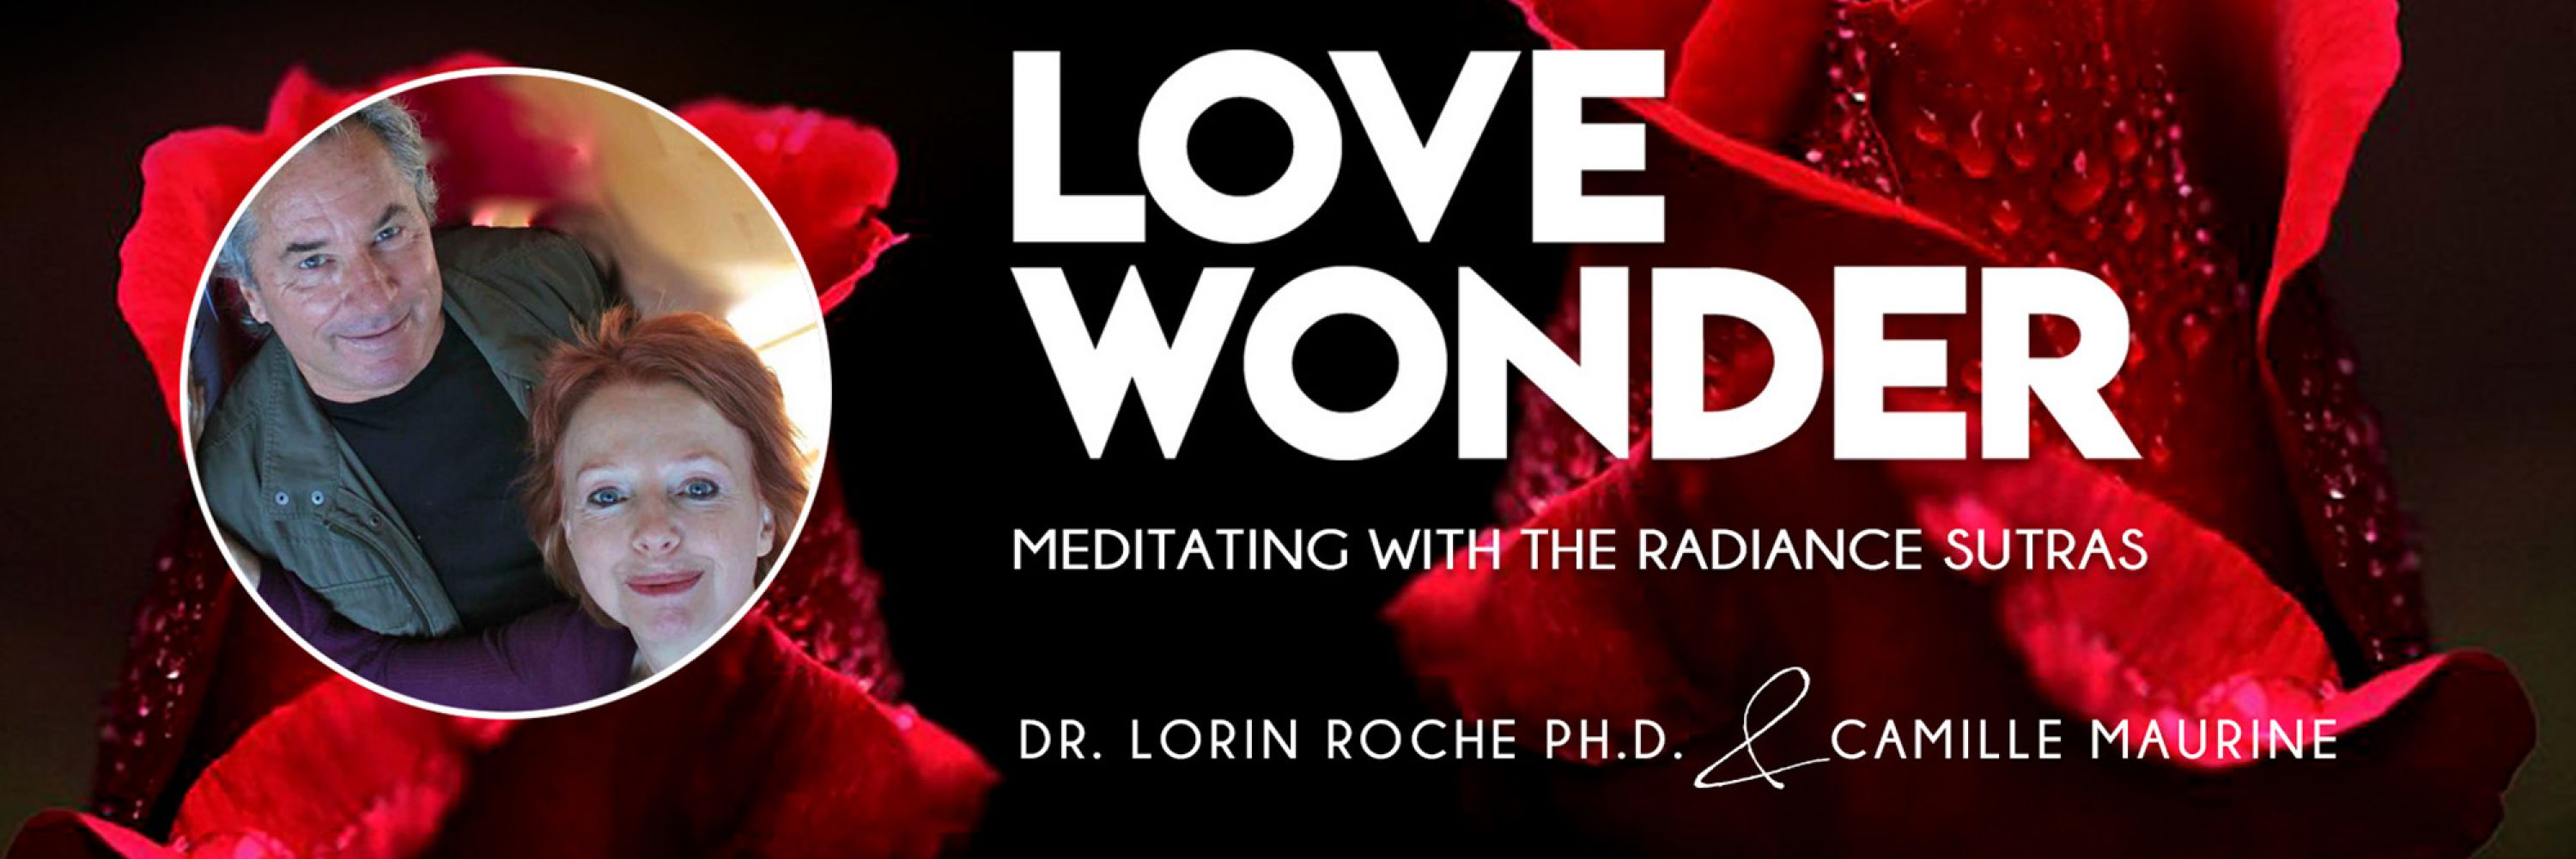 LOVE and WONDER: Meditating with The Radiance Sutras